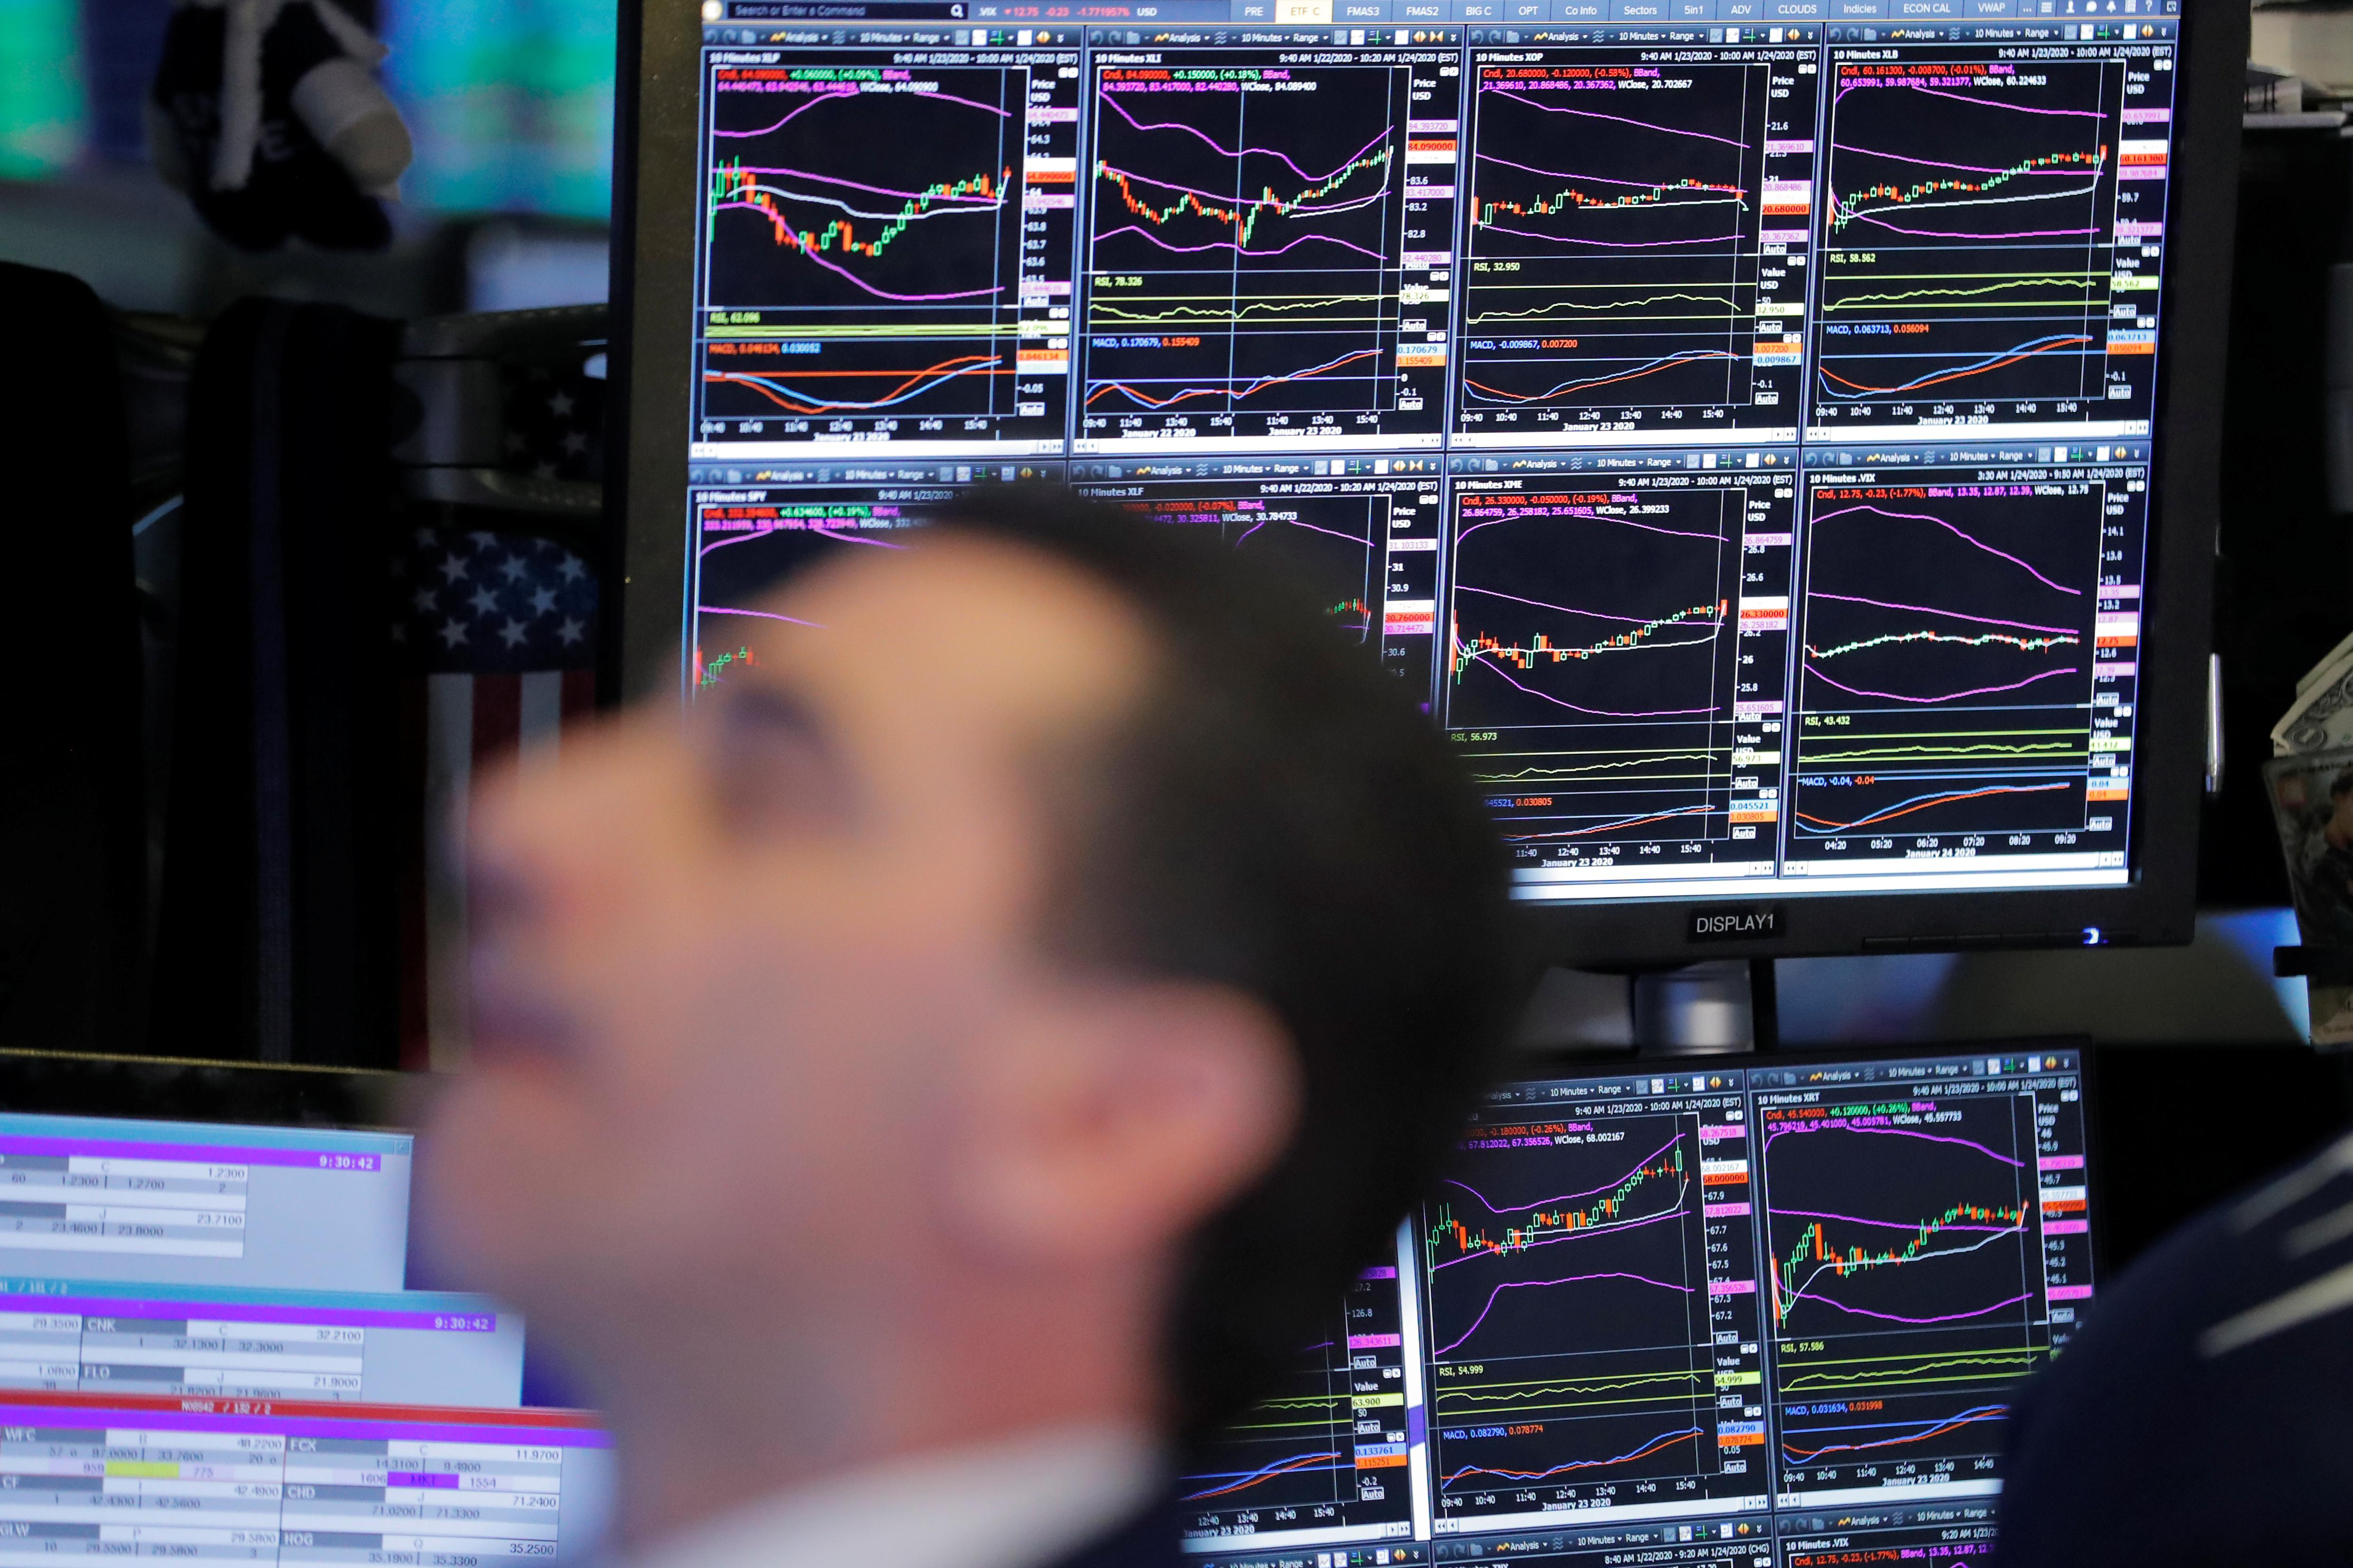 Futures tumble on fears of financial hit from China virus